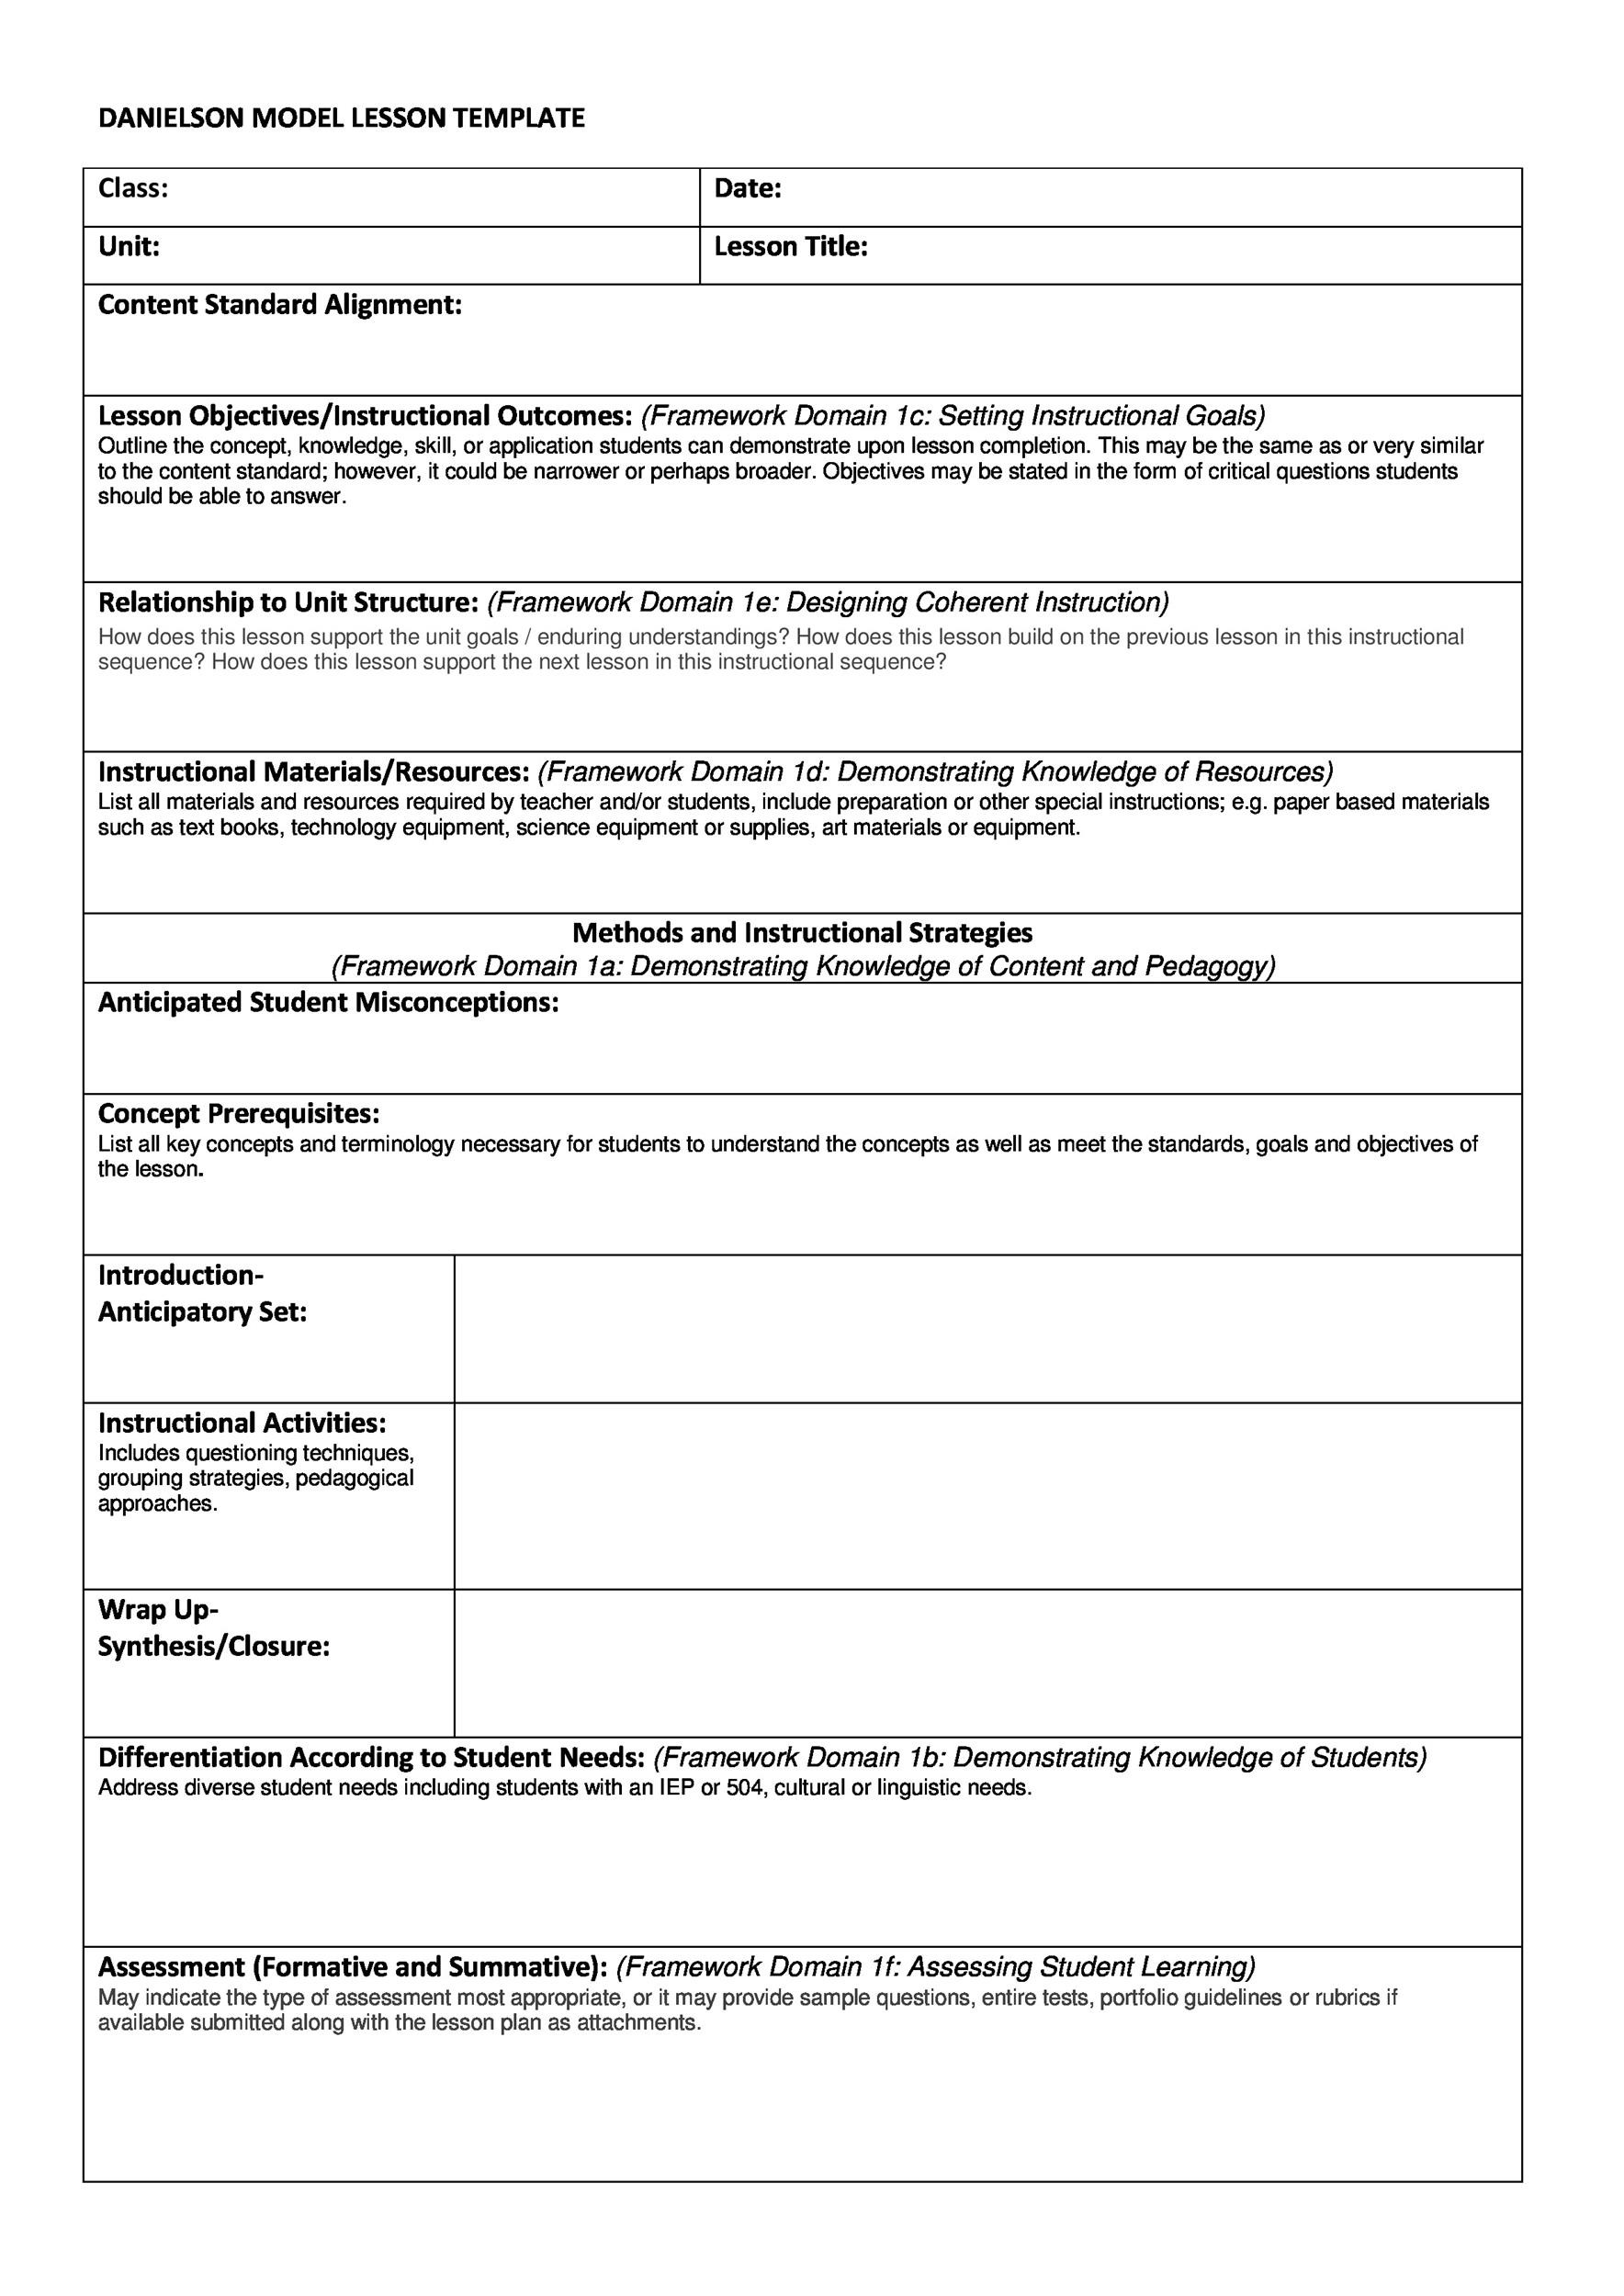 44 free lesson plan templates common core preschool weekly for Lesson plan template using common core standards